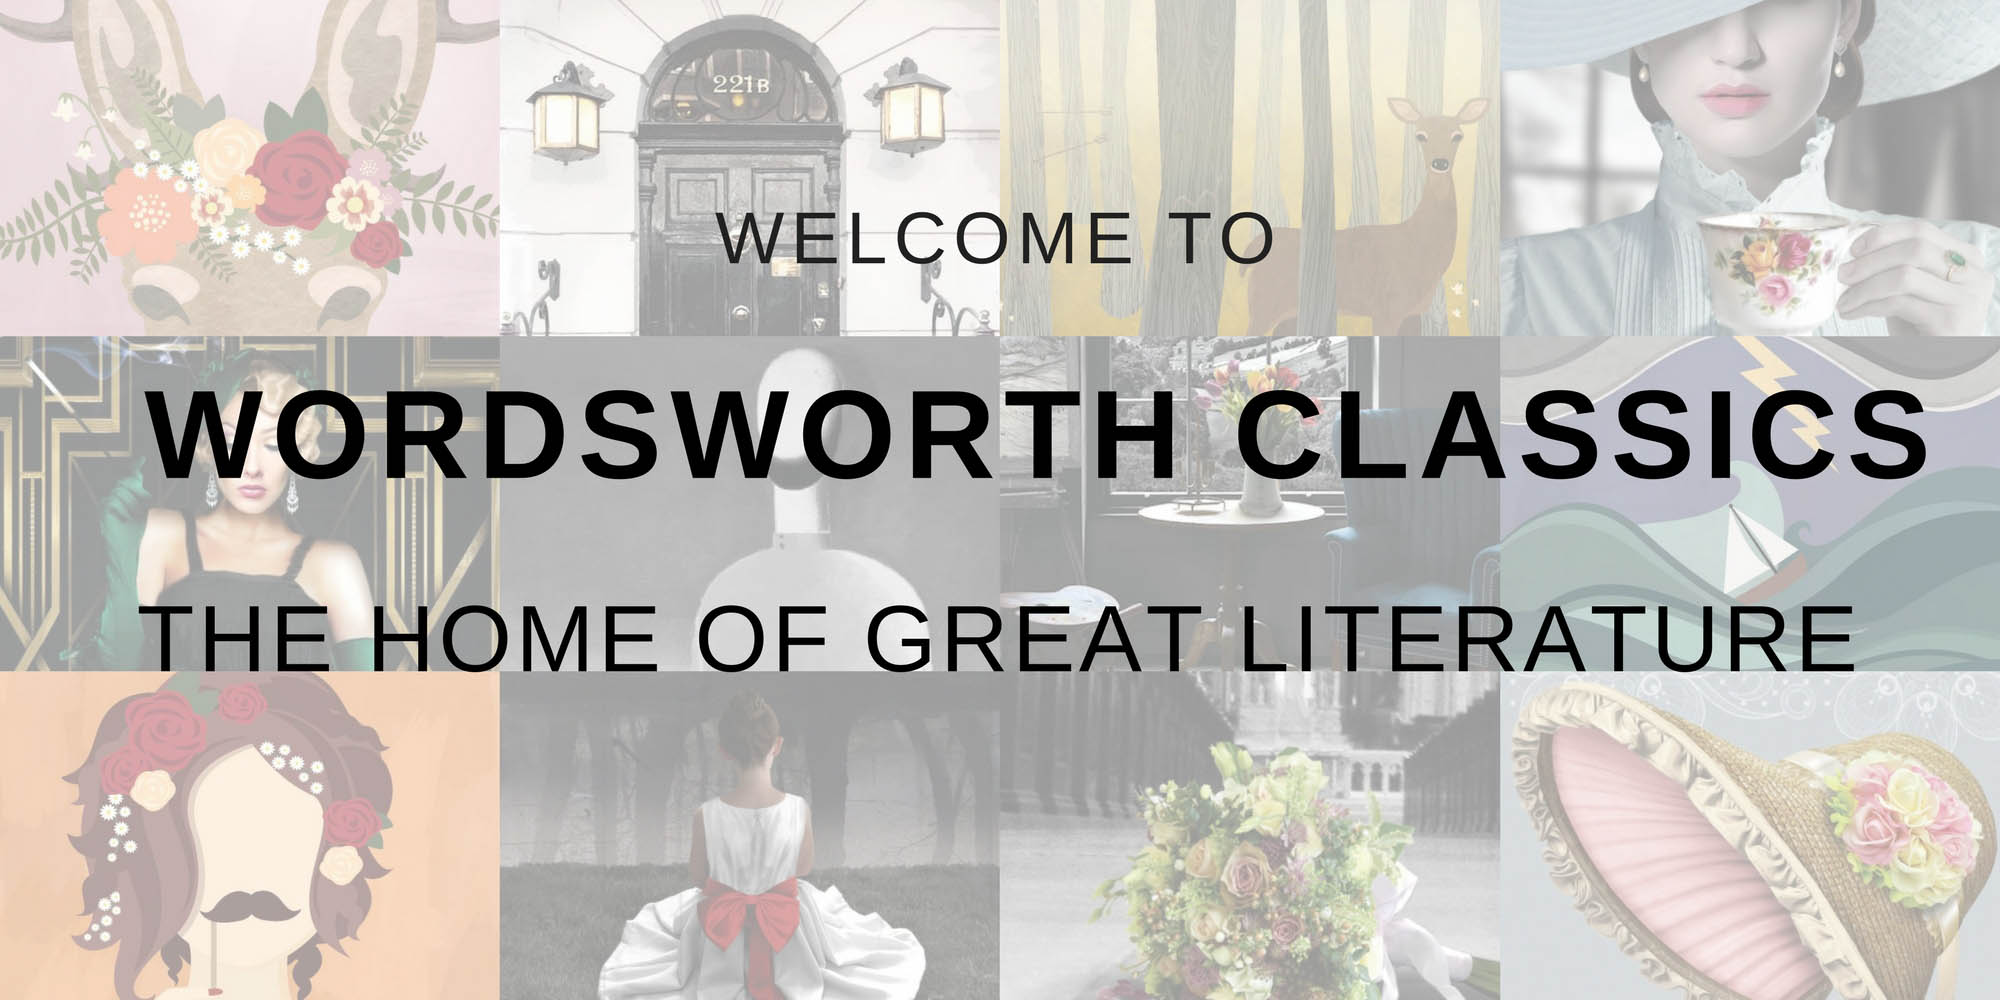 Wordsworth Classics USA